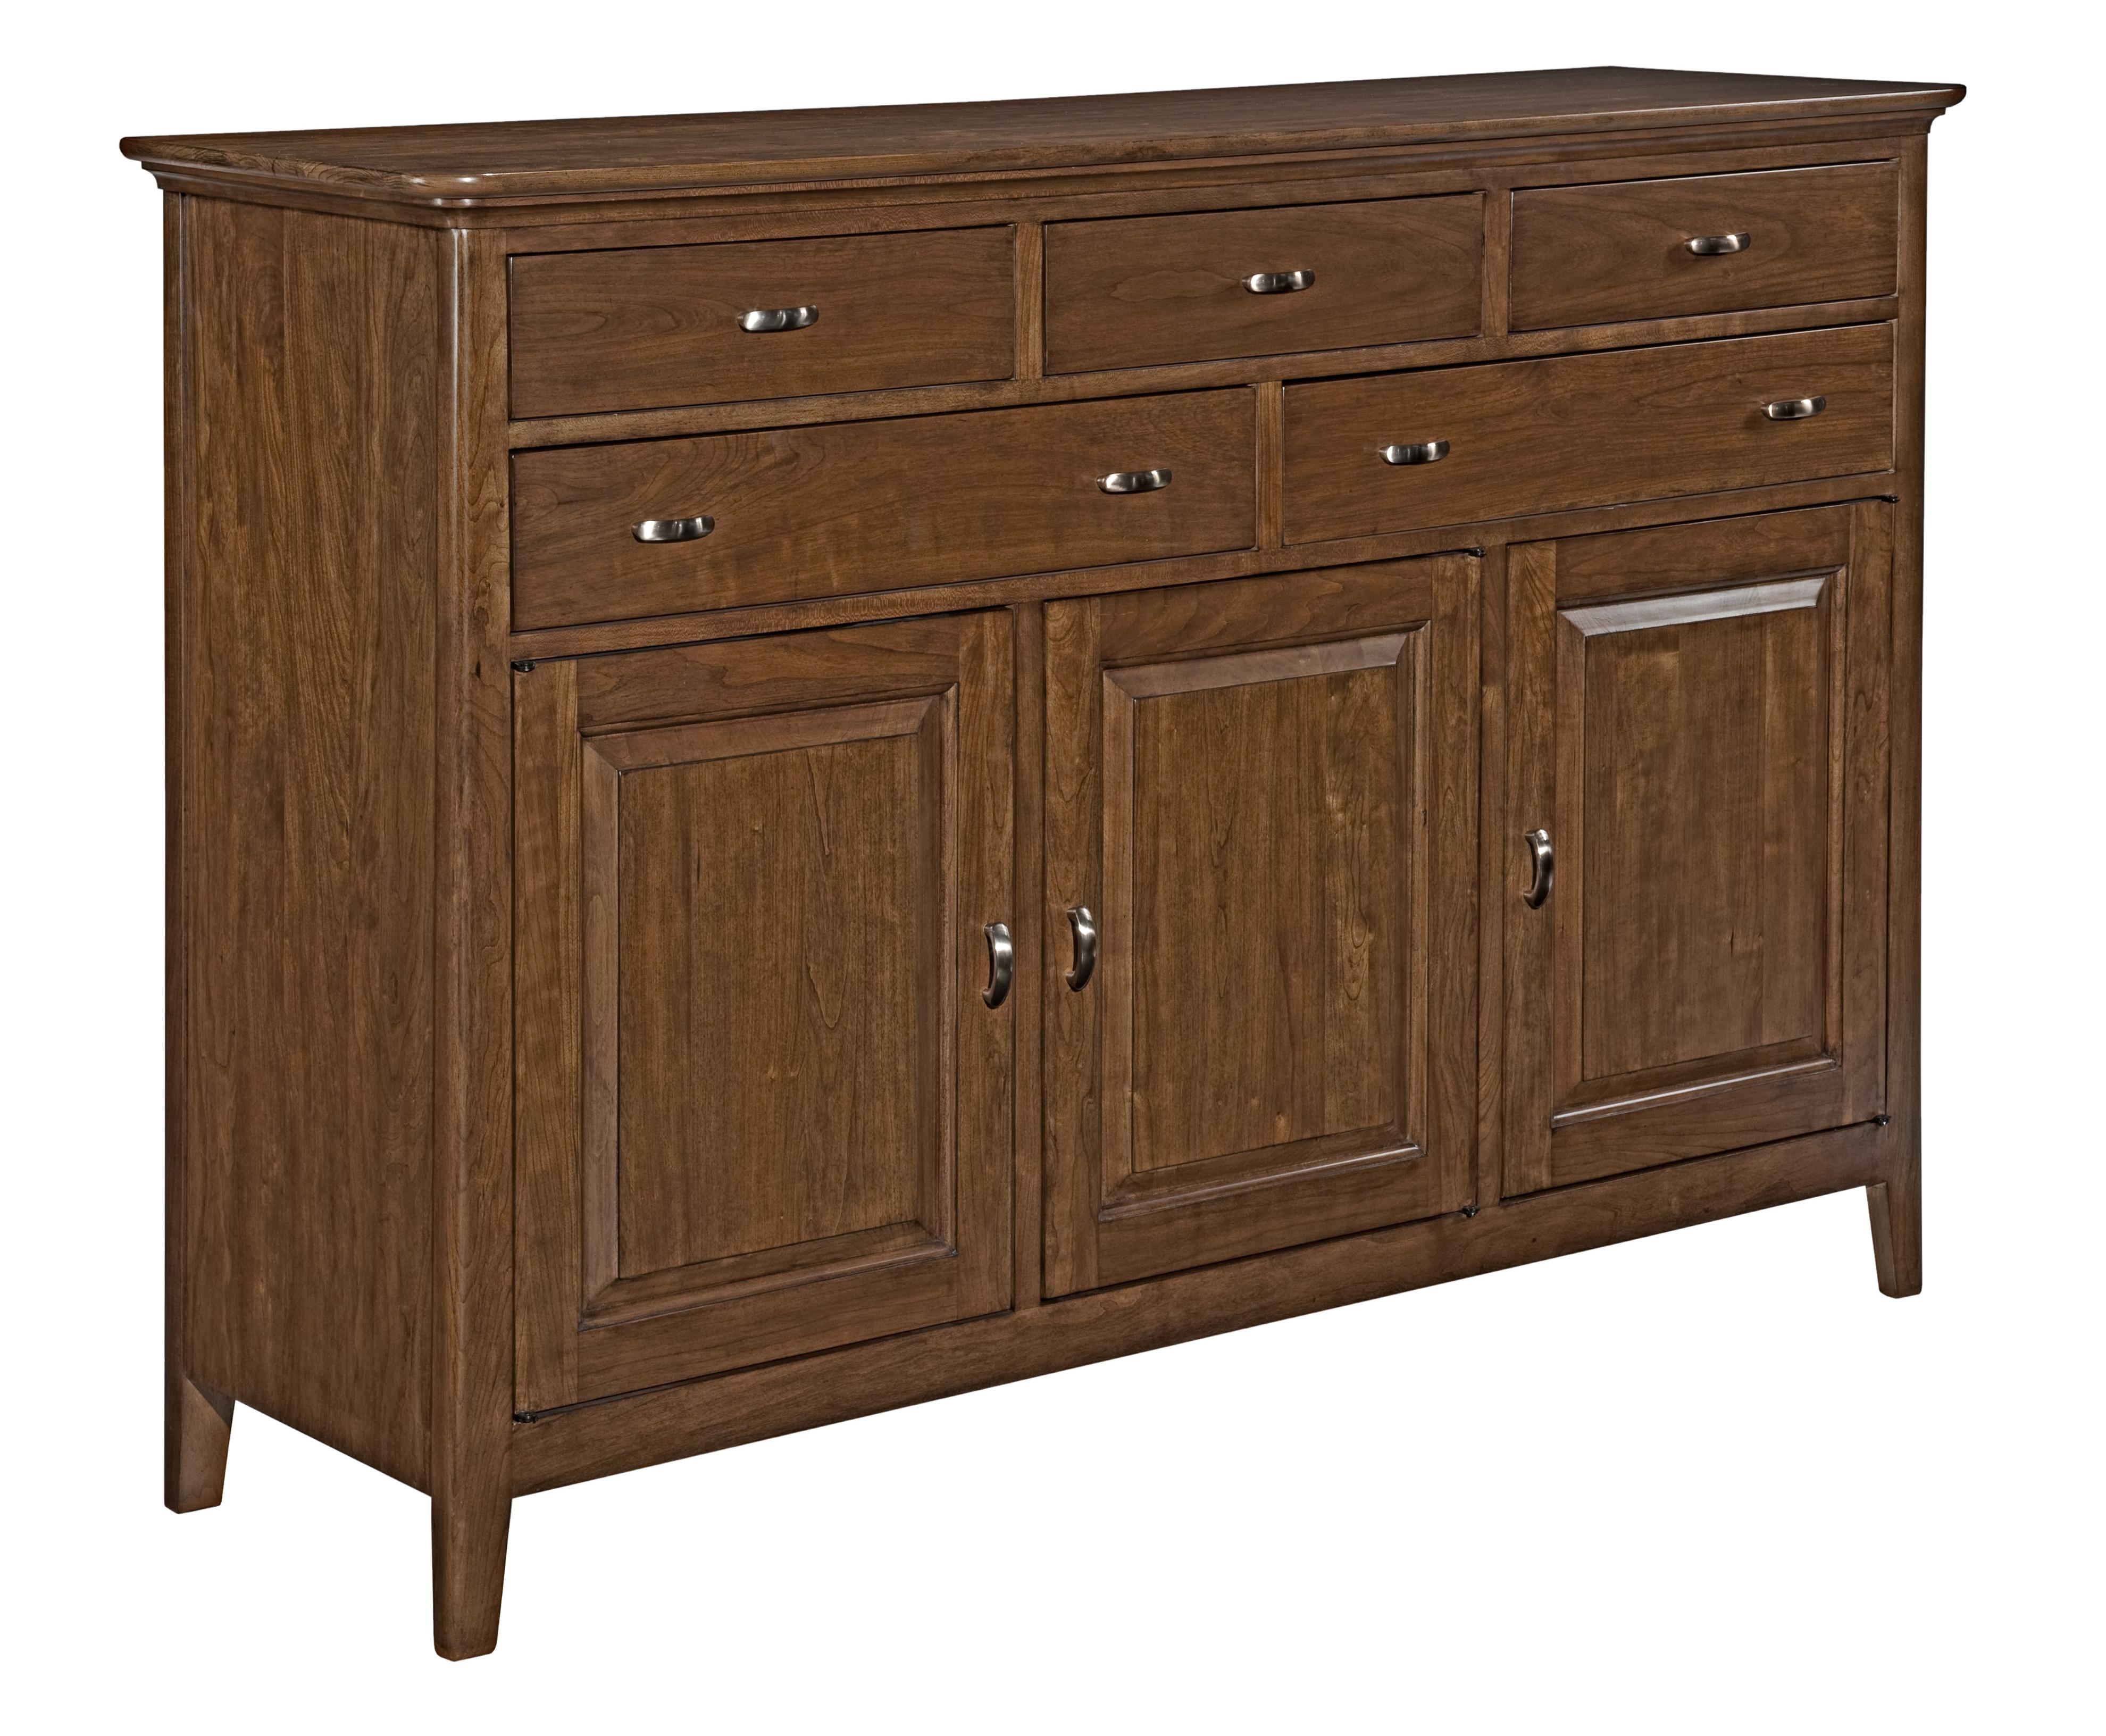 Kincaid Furniture Cherry Park Sideboard - Item Number: 63-090